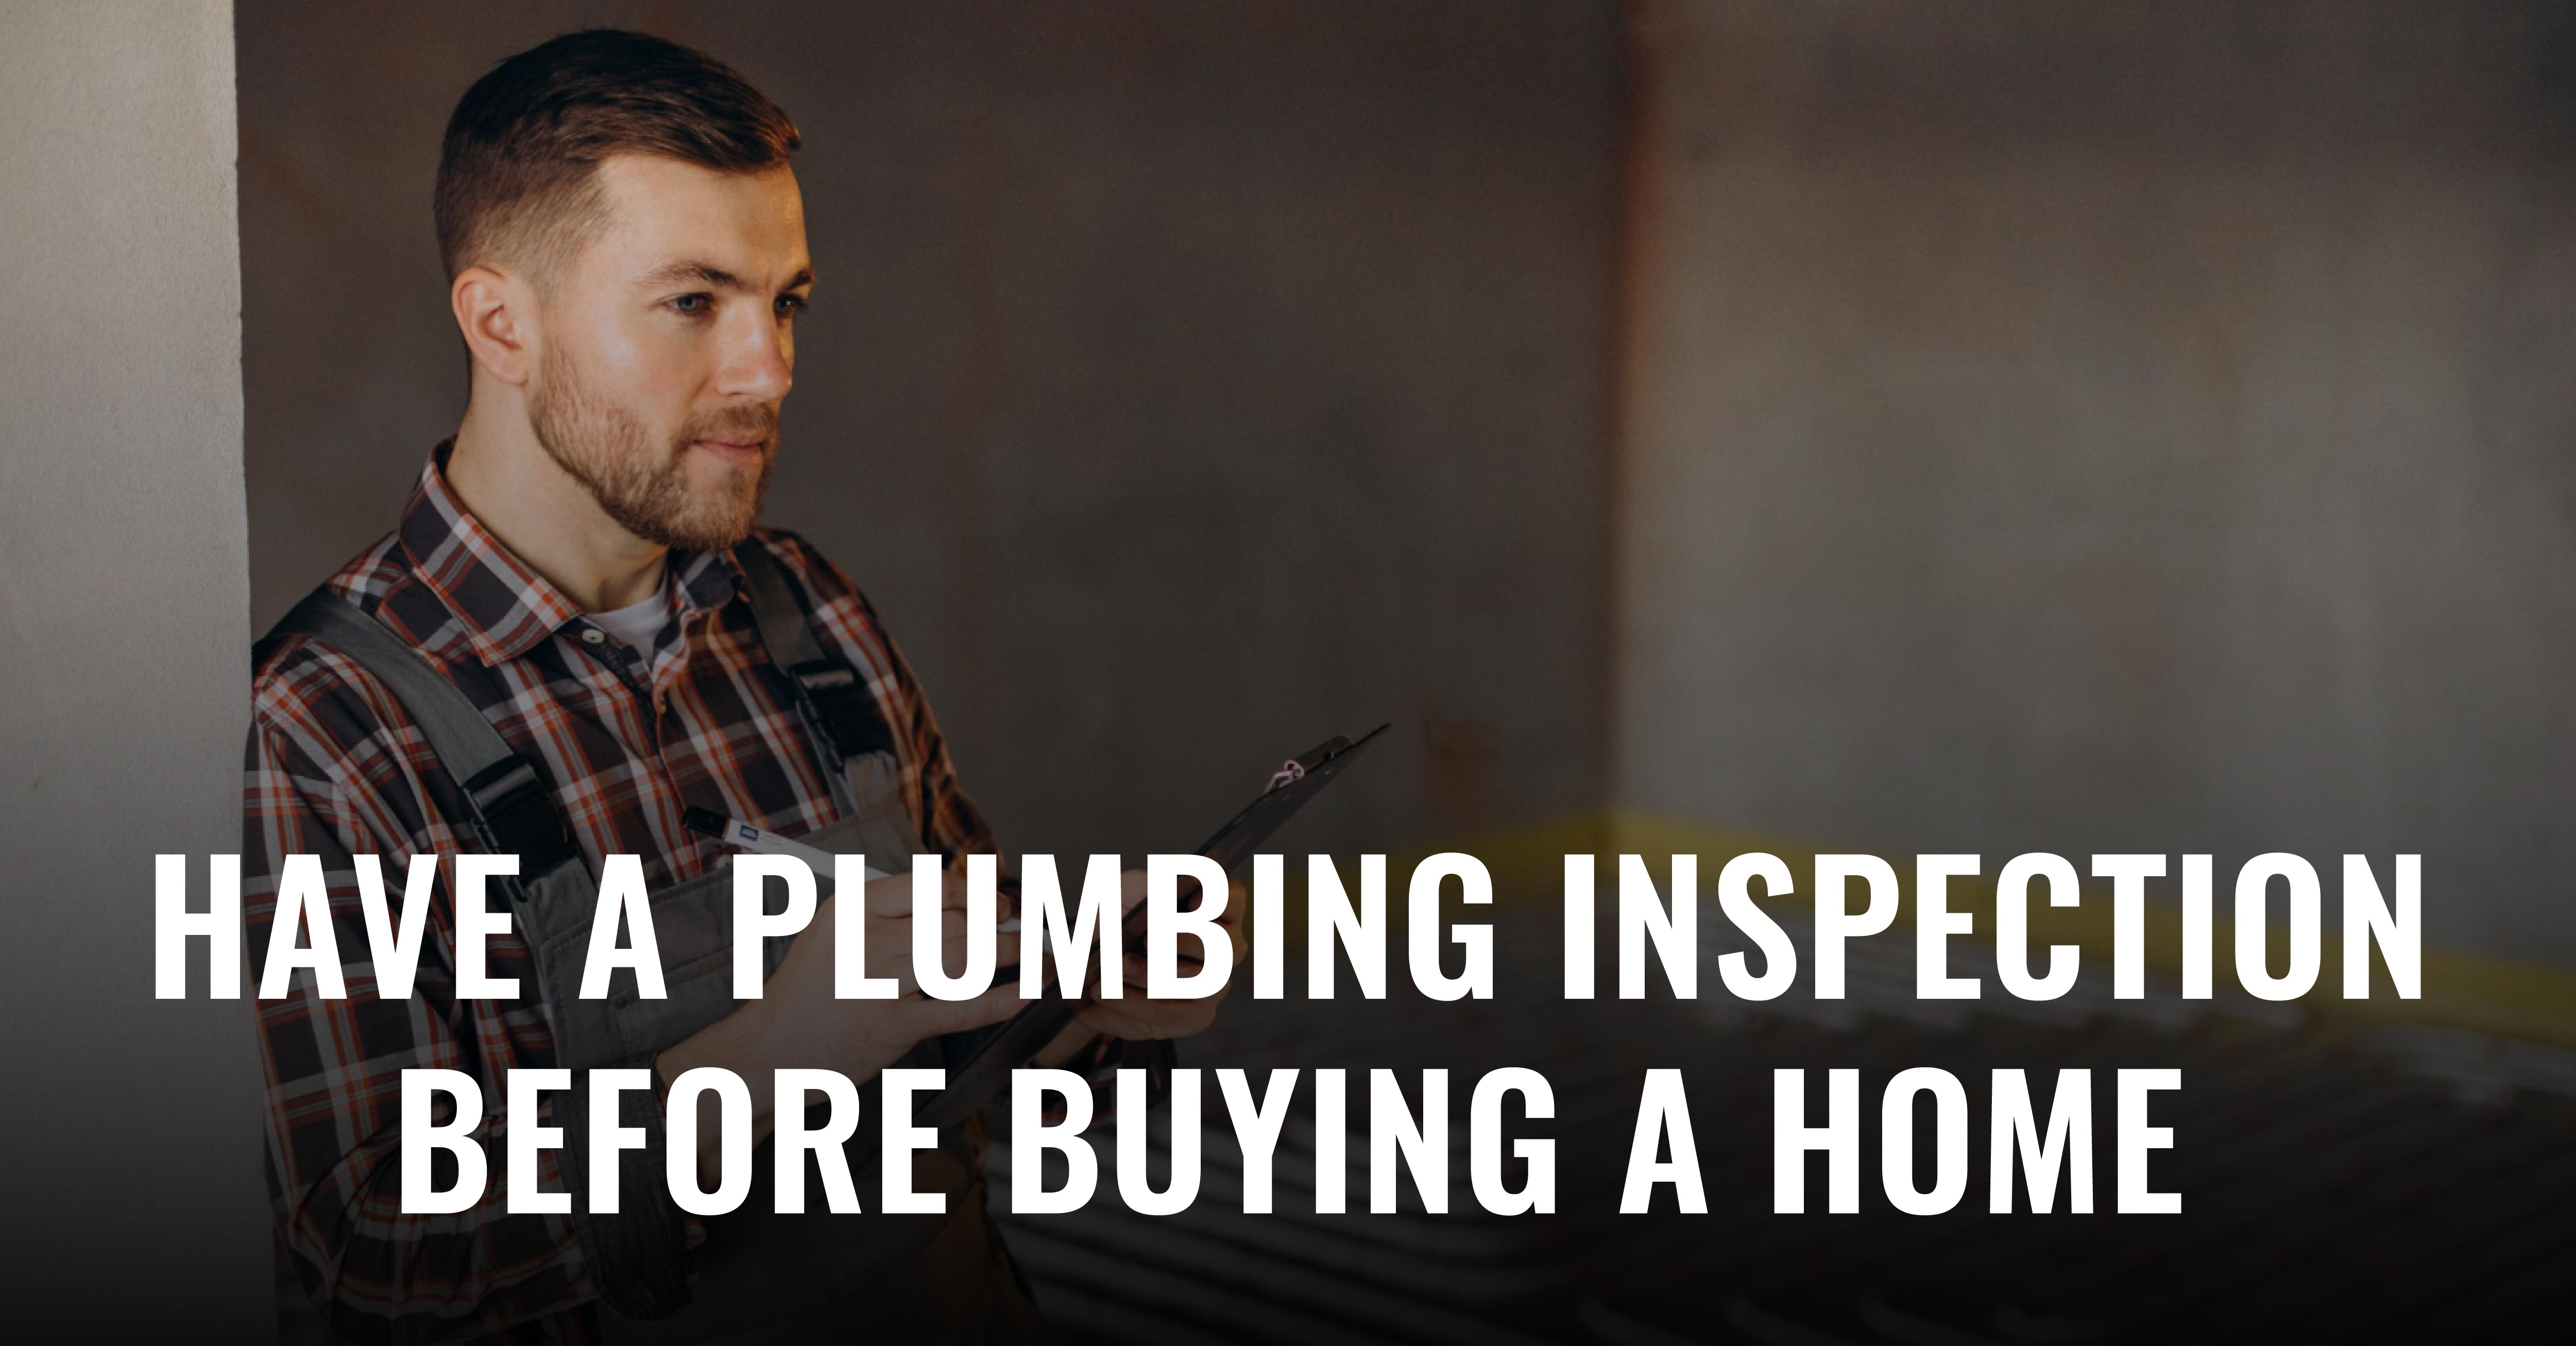 Moving into a new house is both an exciting and stressful time! Clear up some the uncertainty by hiring a plumber to give your dream home an inspection...so you can be sure it won't turn into a nightmare!